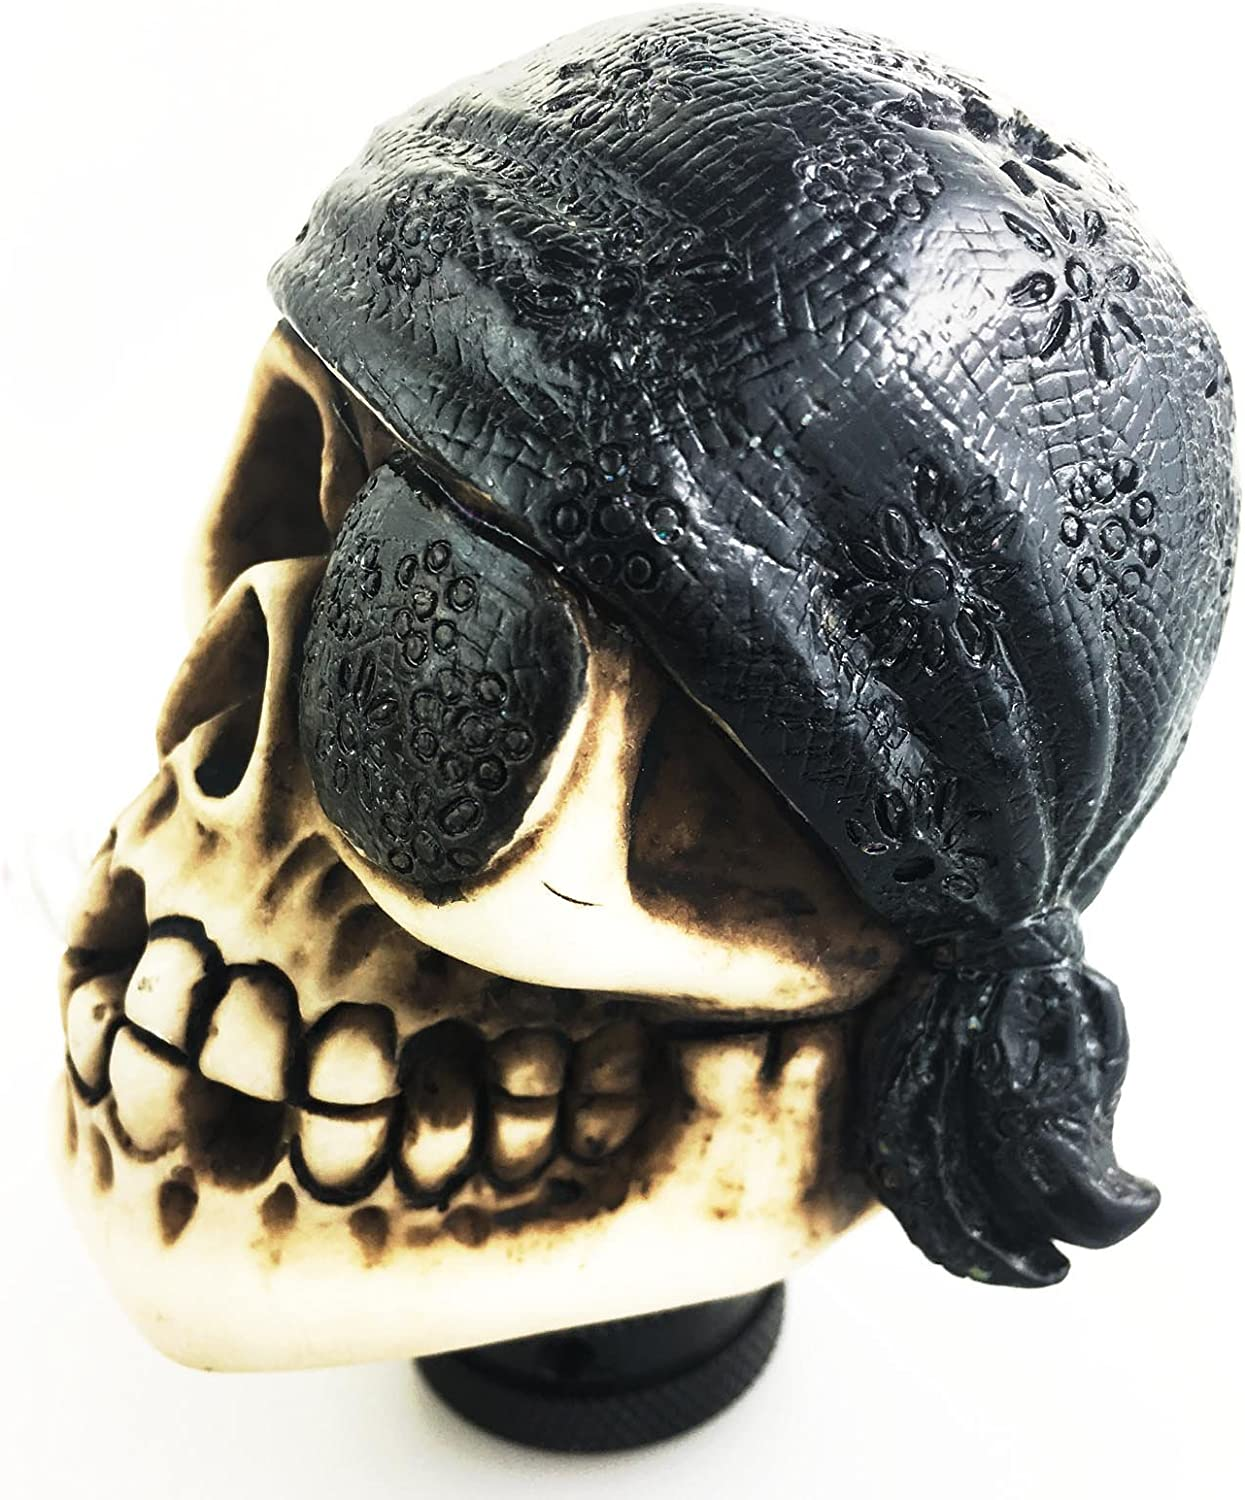 Arenbel Skull Car Lever Knob Universal Gear Stick Shifter Handle Shifting Head of One Eye Pirate Style fit Most MT at Black